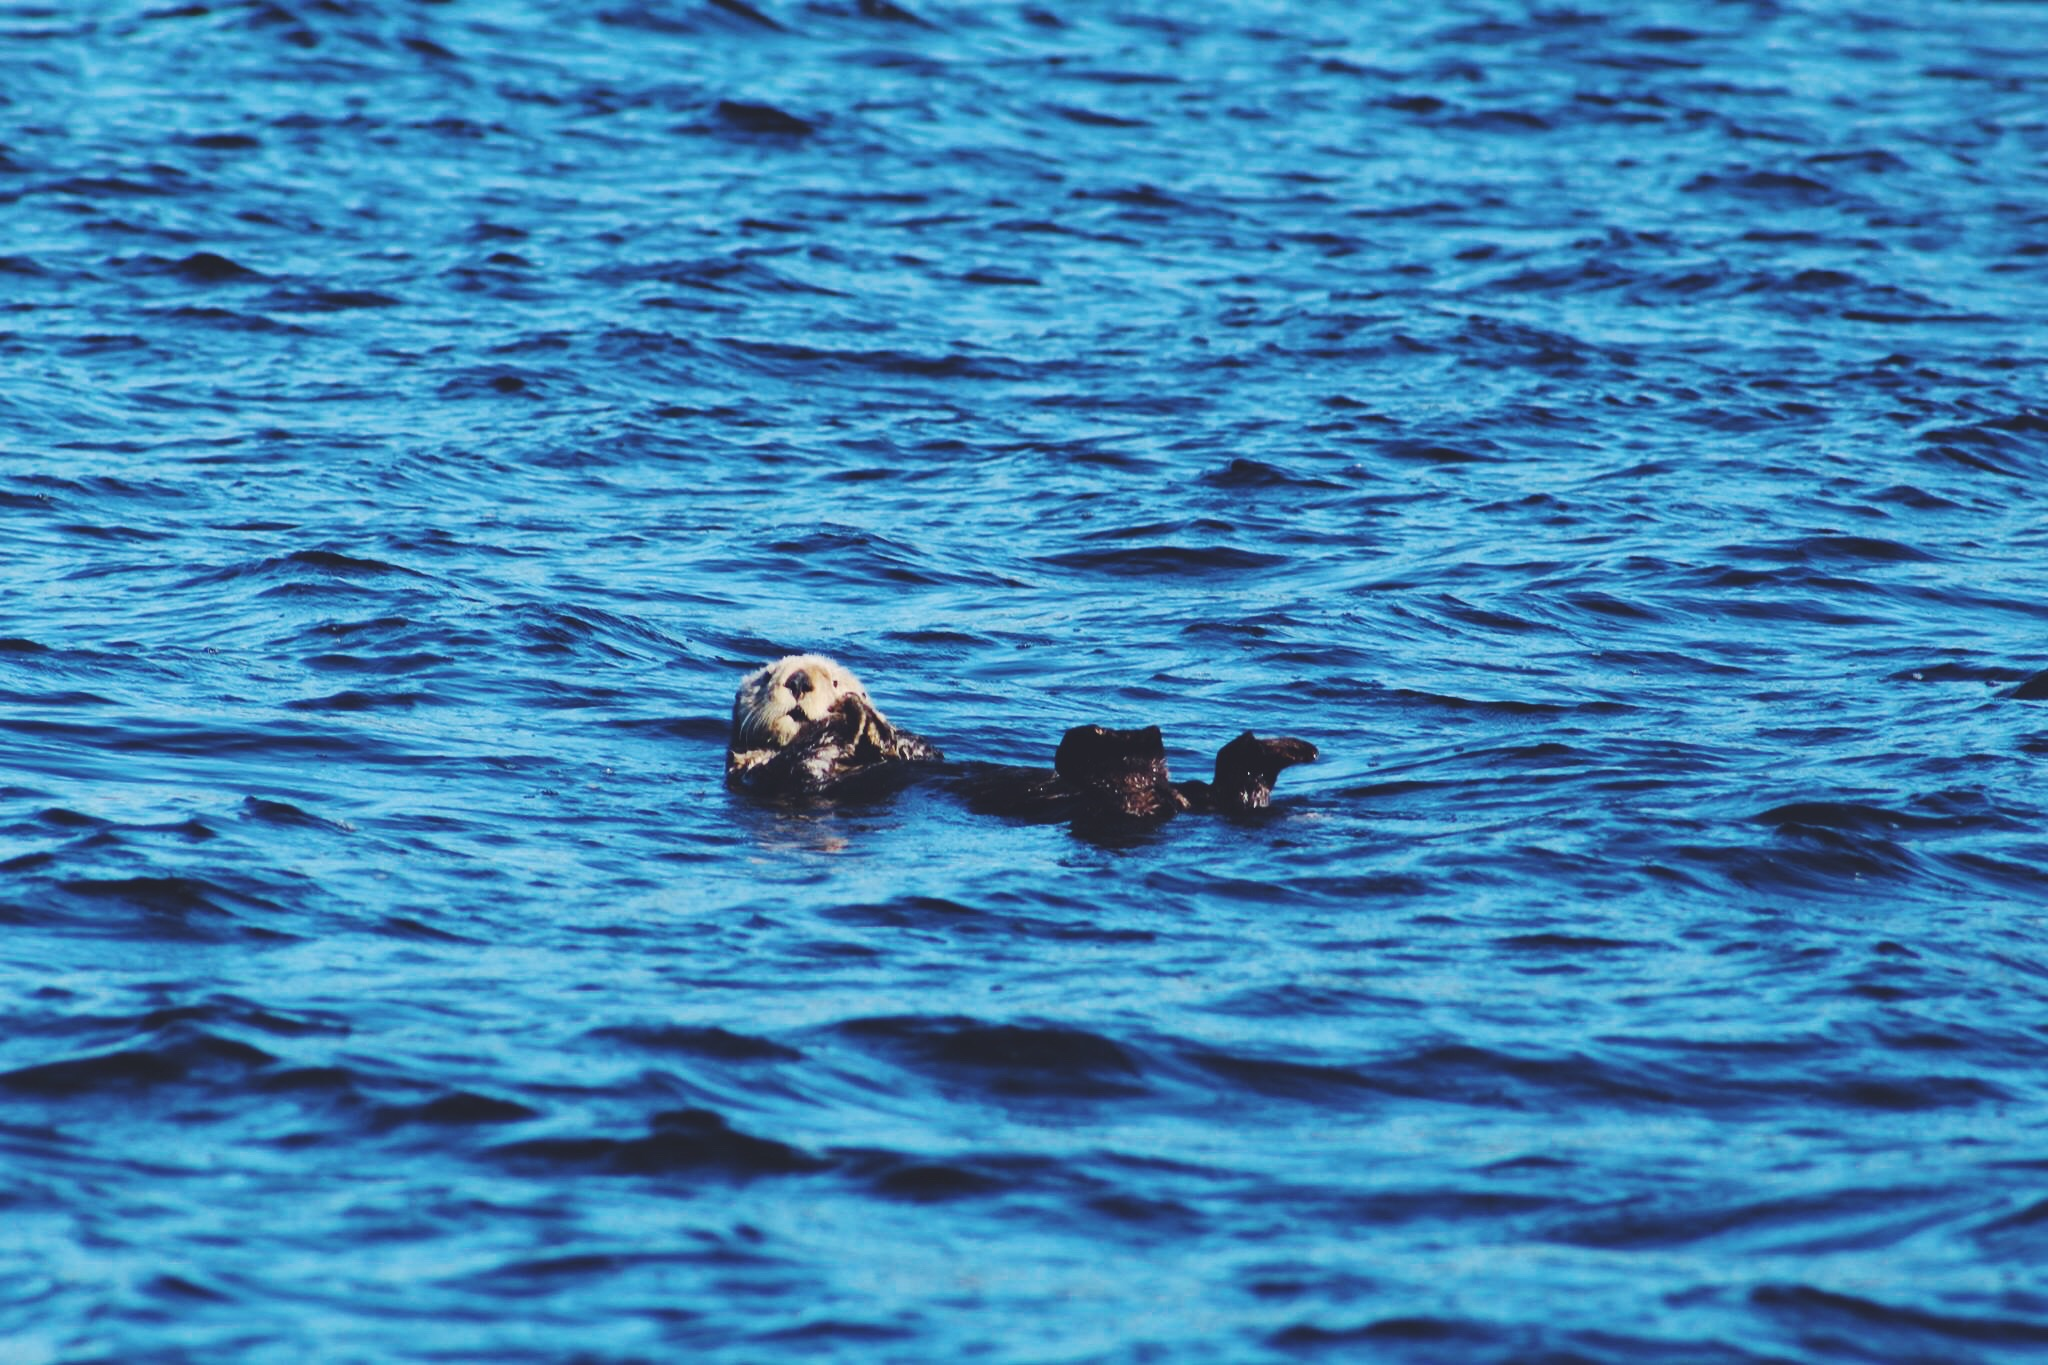 ...and otters // photo by Kaelin.